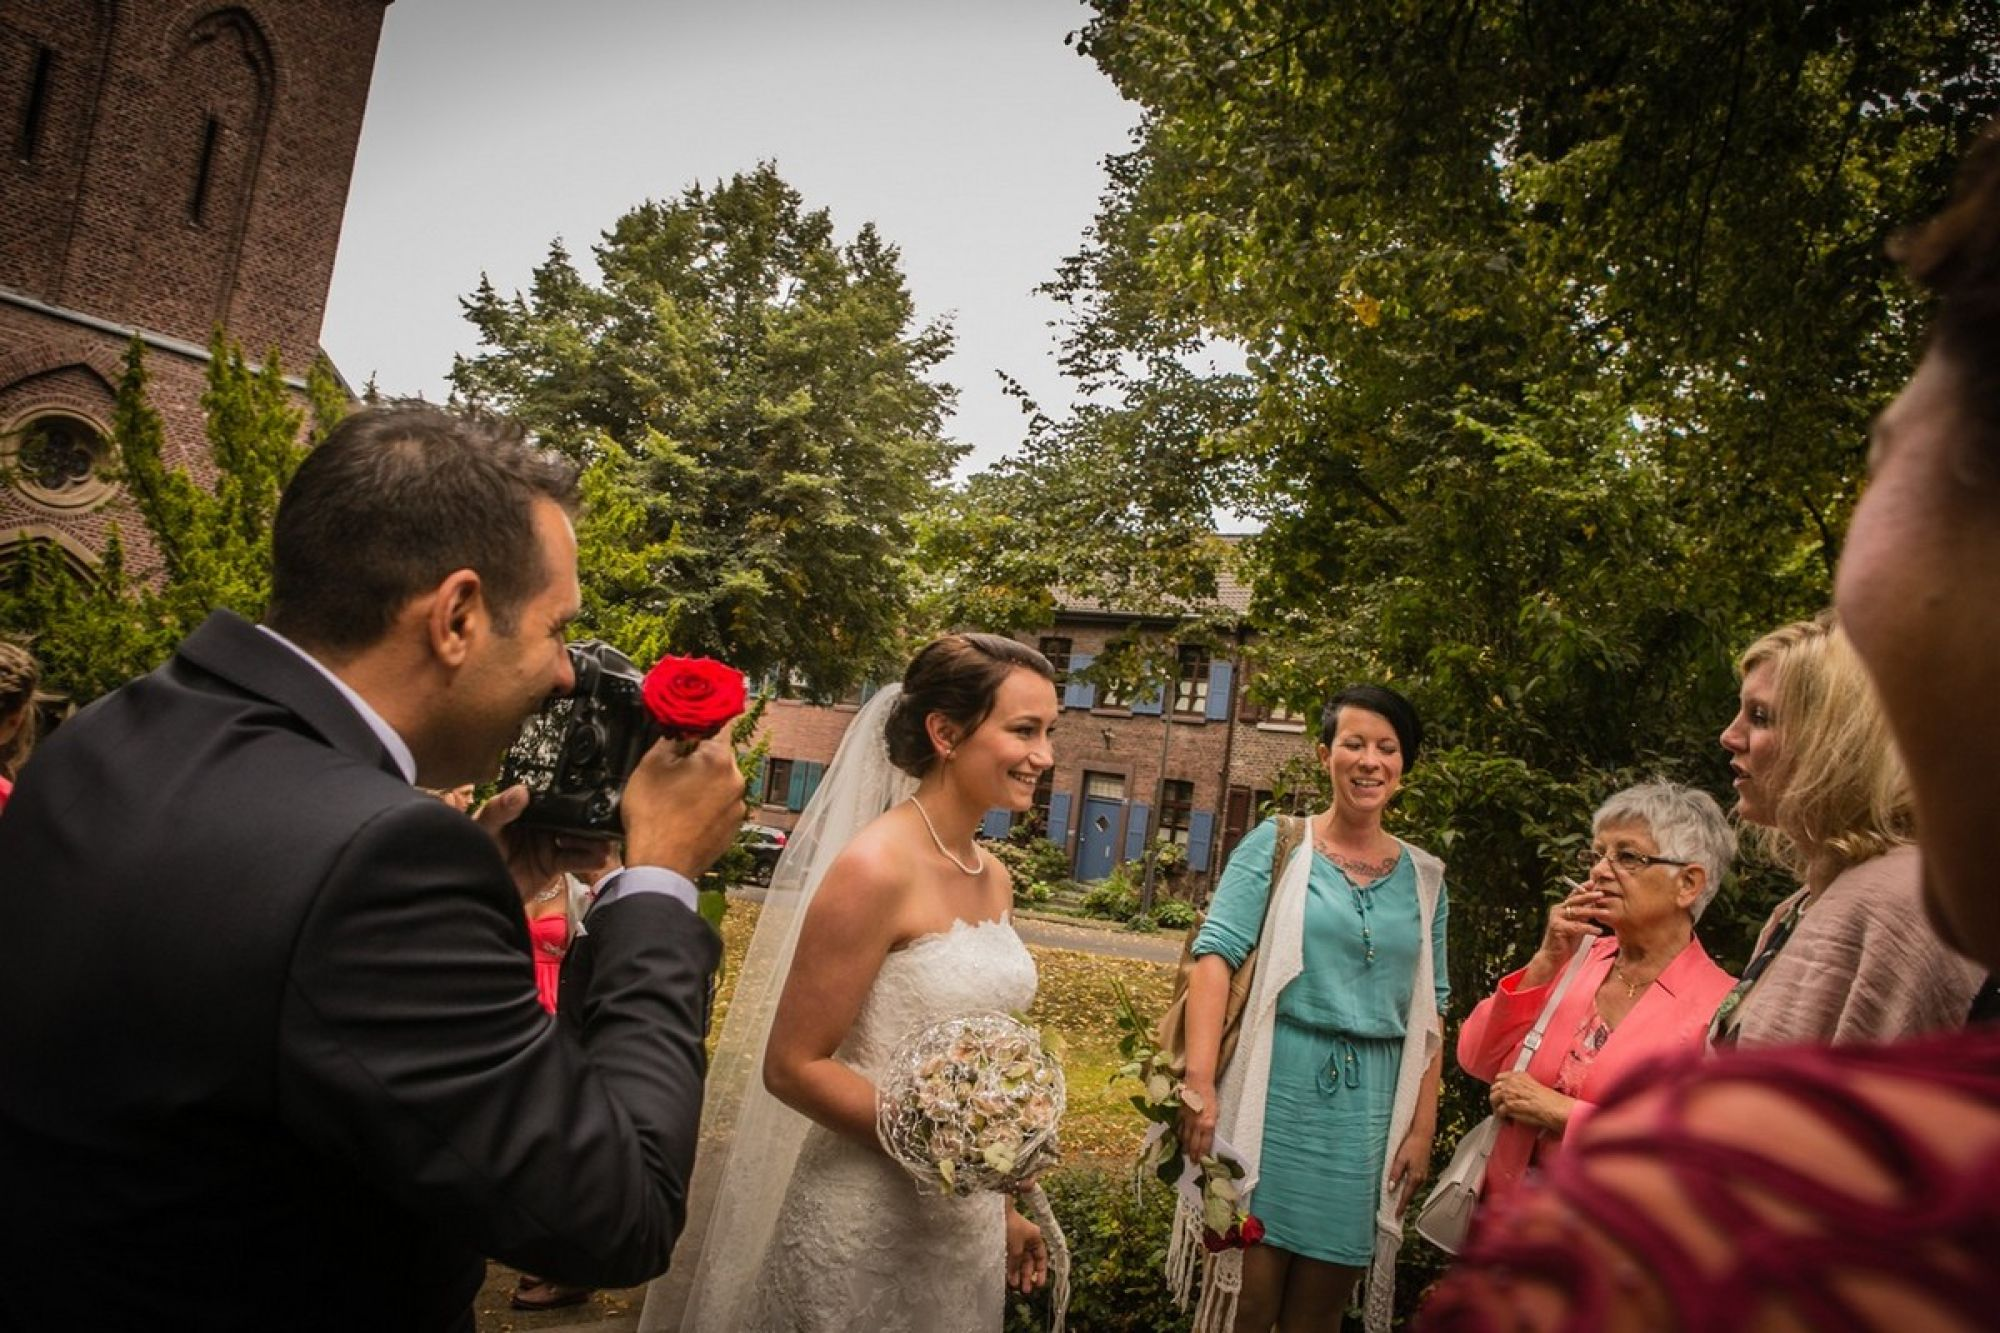 Click to enlarge image master_wedding_4 10.jpg